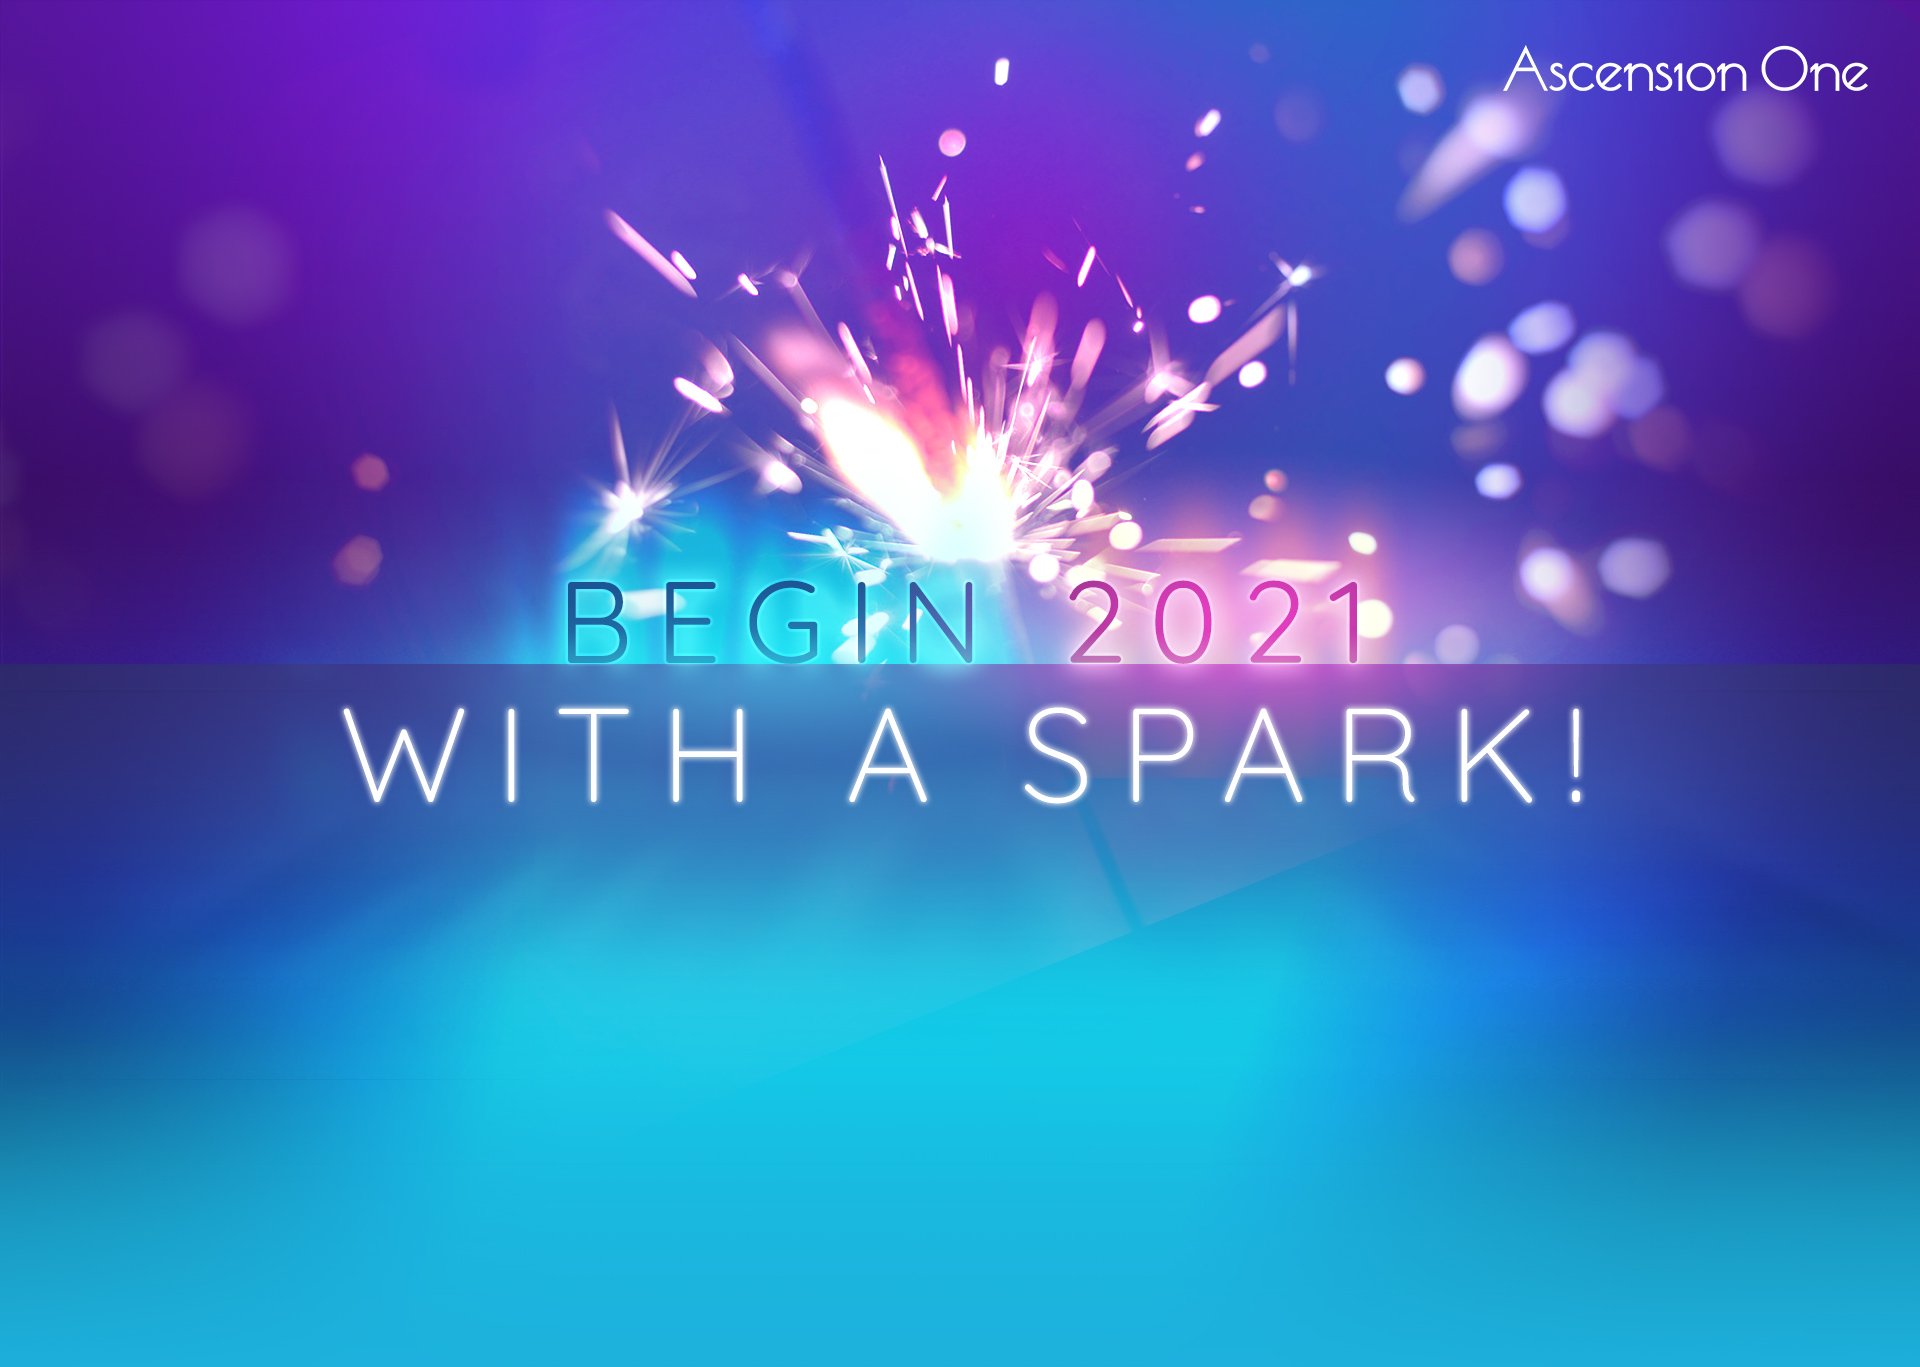 Begin 2021 with a Spark>!